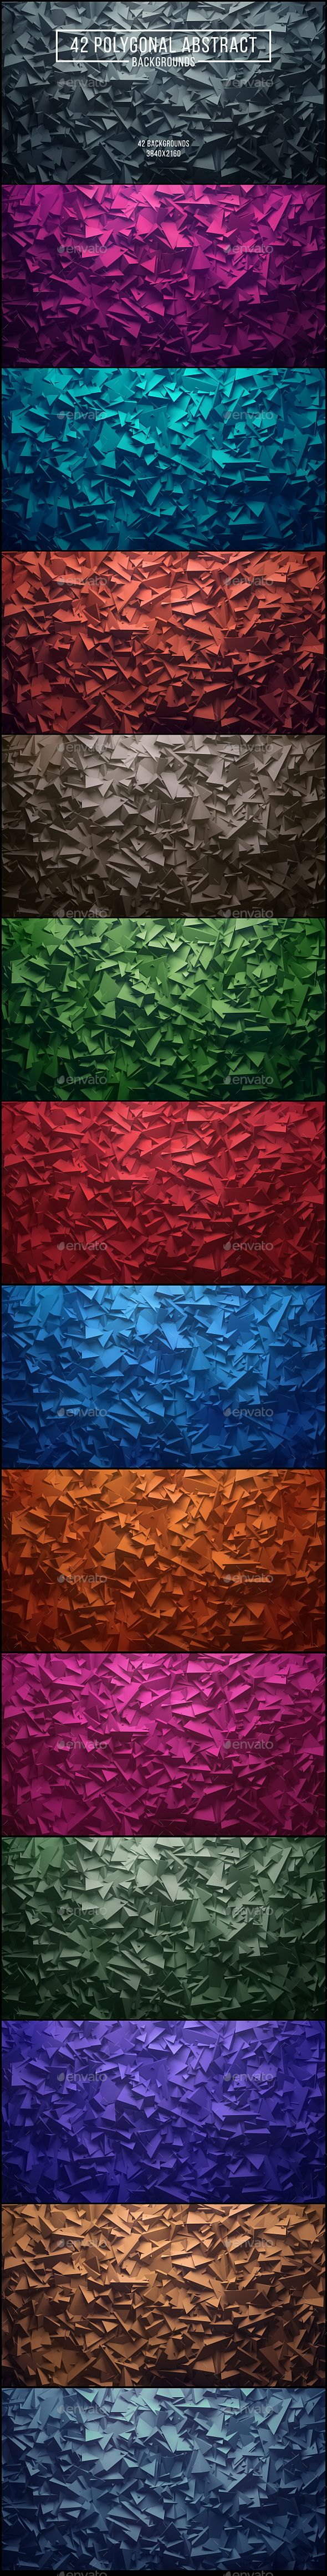 42 Polygonal Abstract Backgrounds. Download here: http://graphicriver.net/item/42-polygonal-abstract-backgrounds/15077166?ref=ksioks